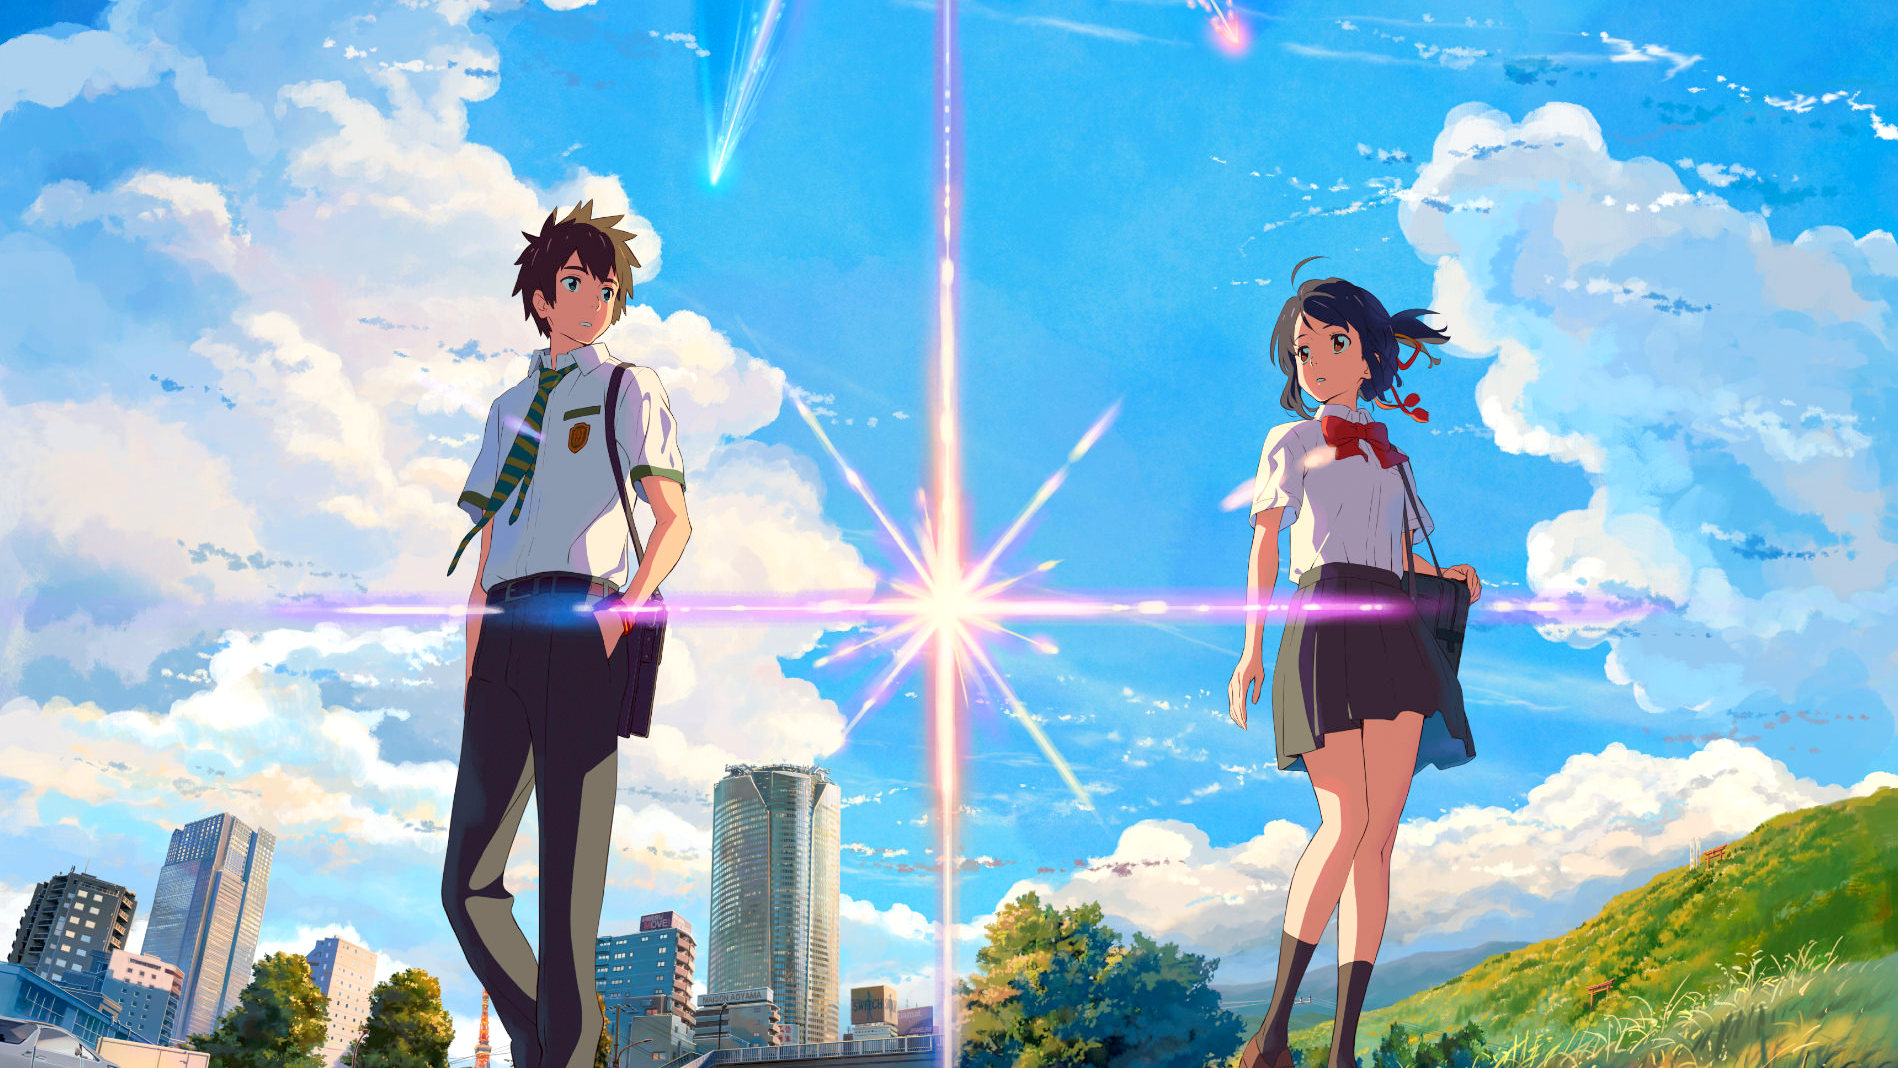 Your Name di Shinkai finalmente al cinema! 23-25 gennaio 2017